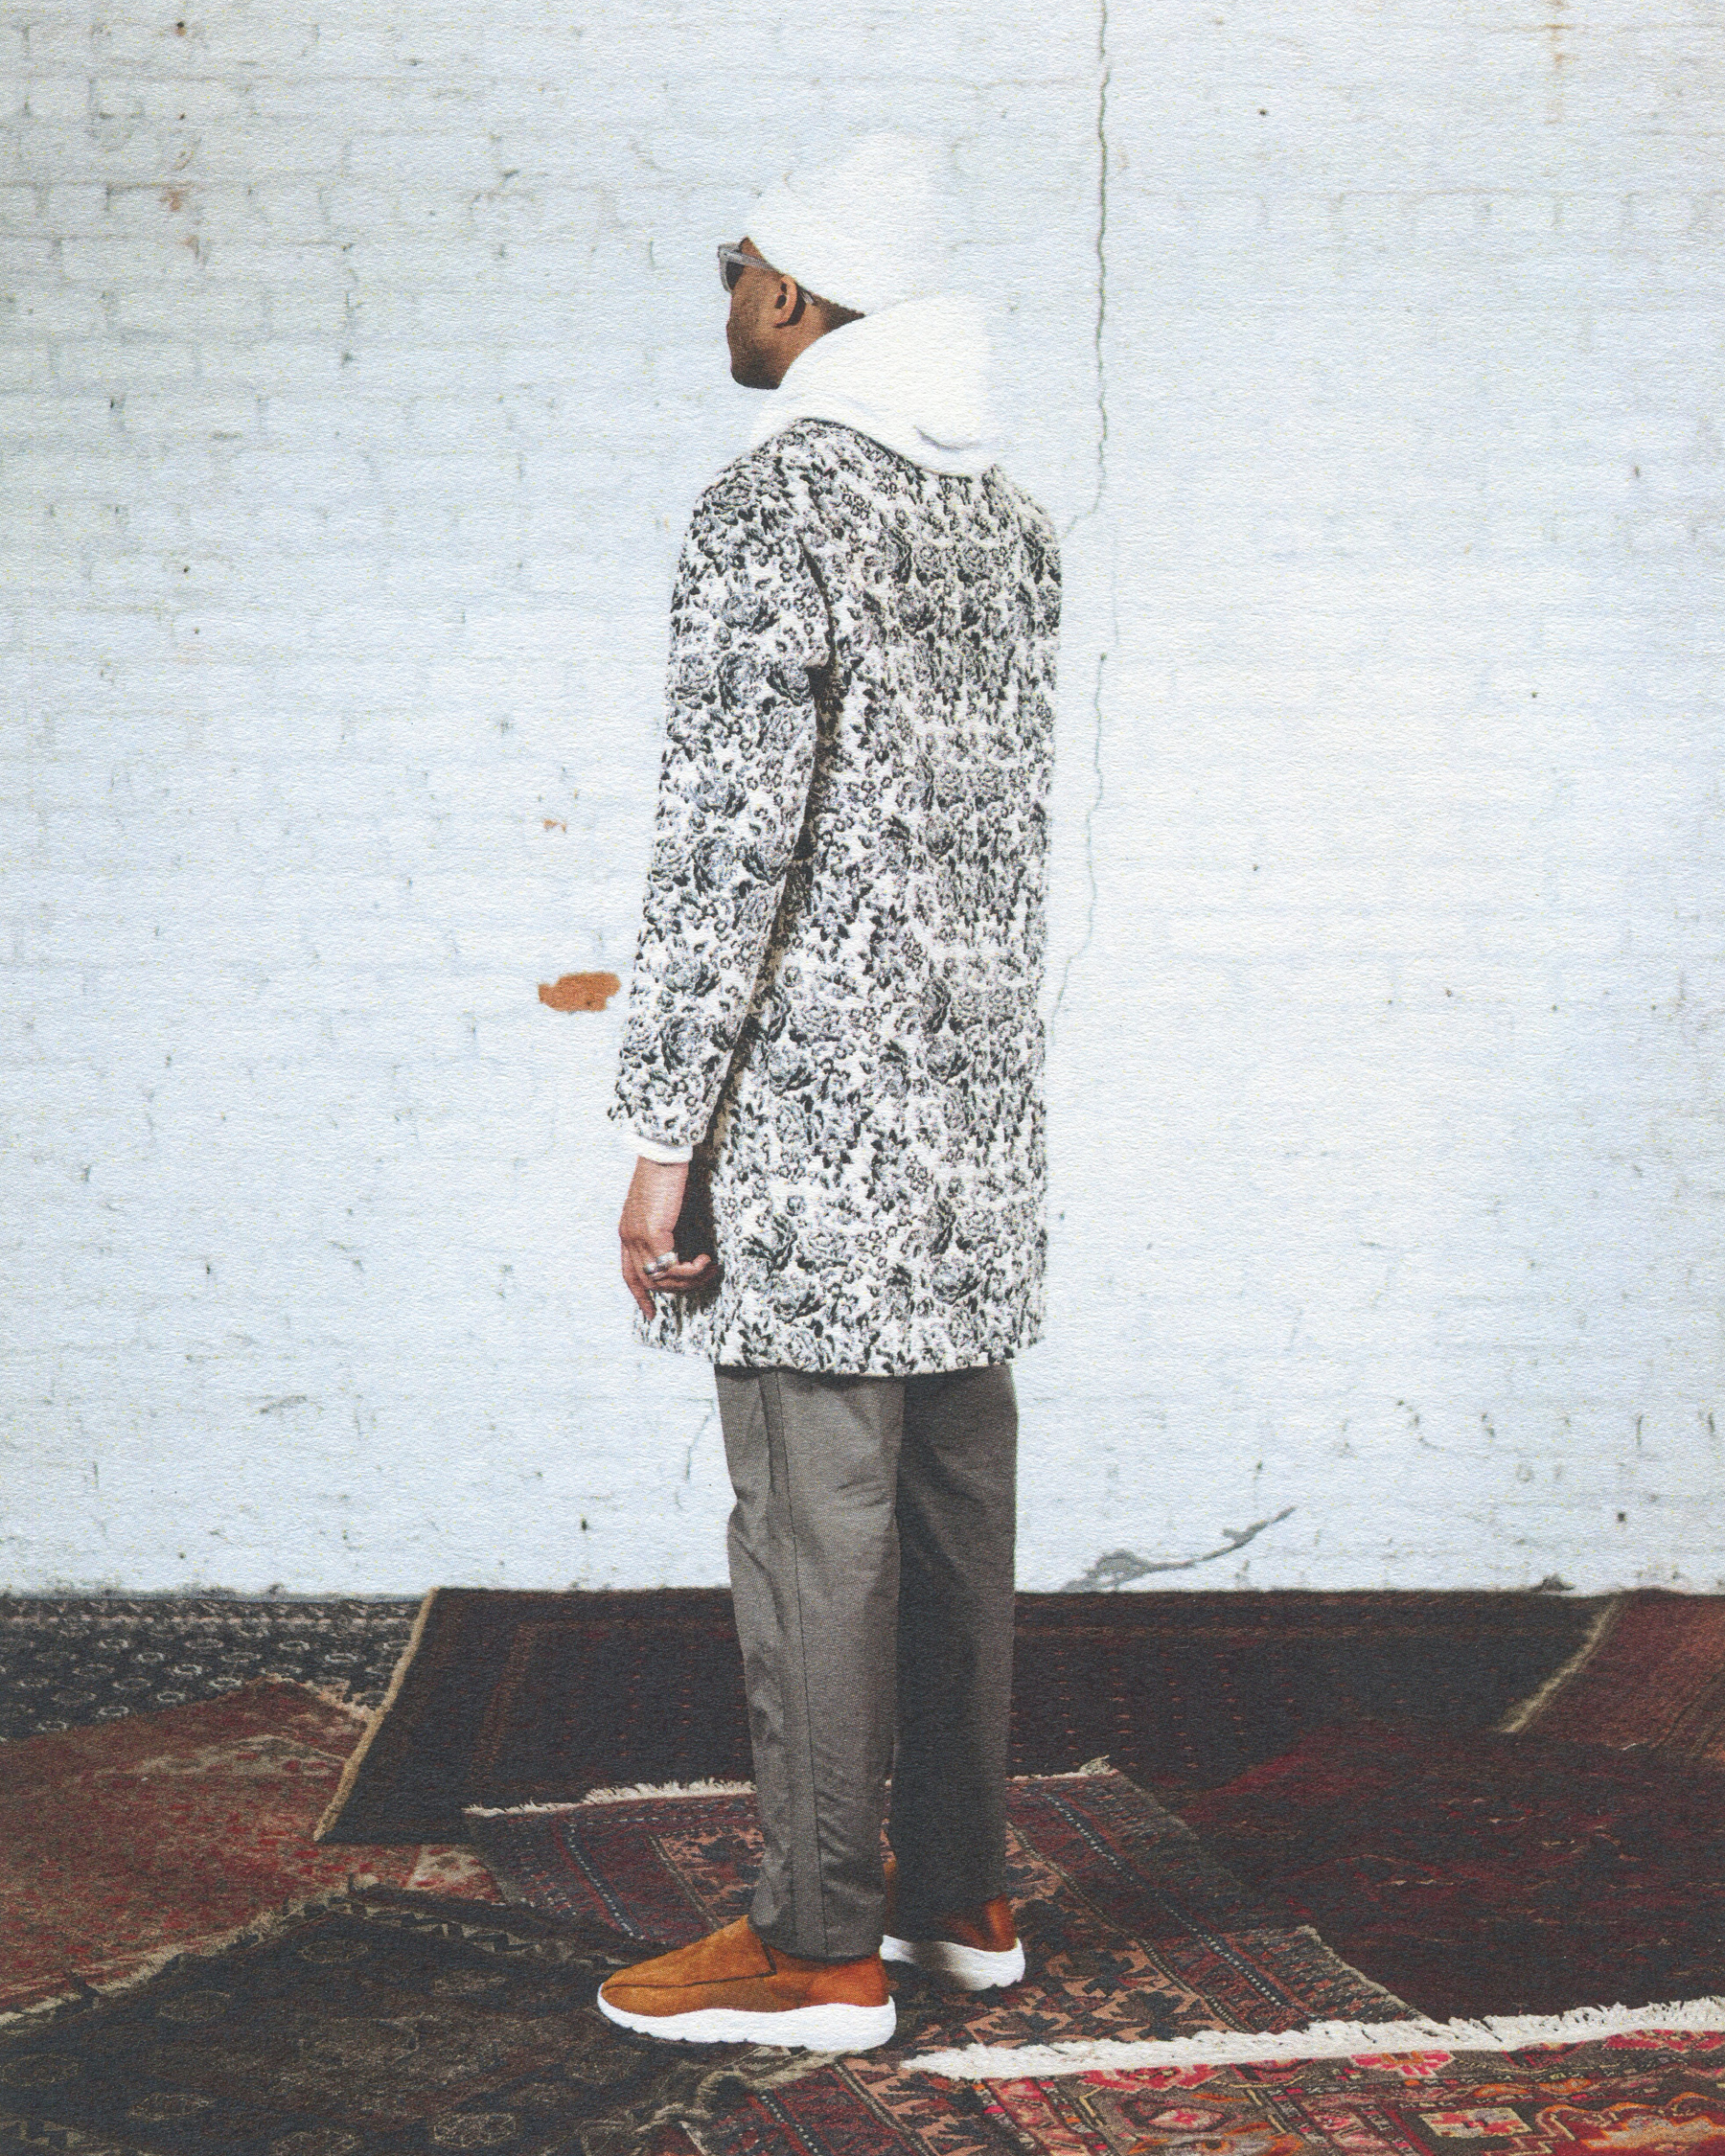 WINWEL-0004-Deprogramming-Lookbook-02